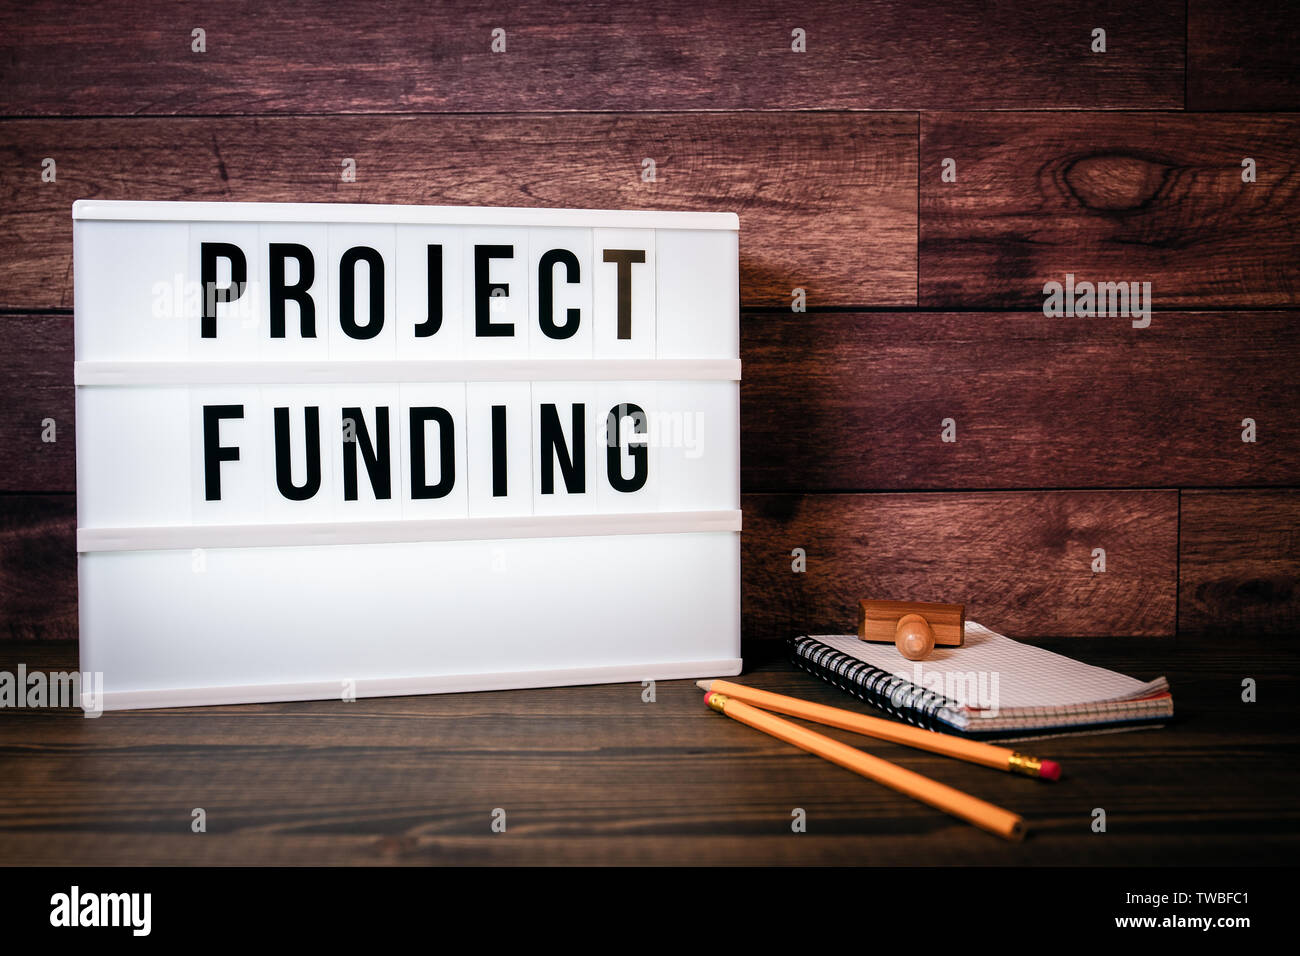 Project Funding. Text in lightbox - Stock Image